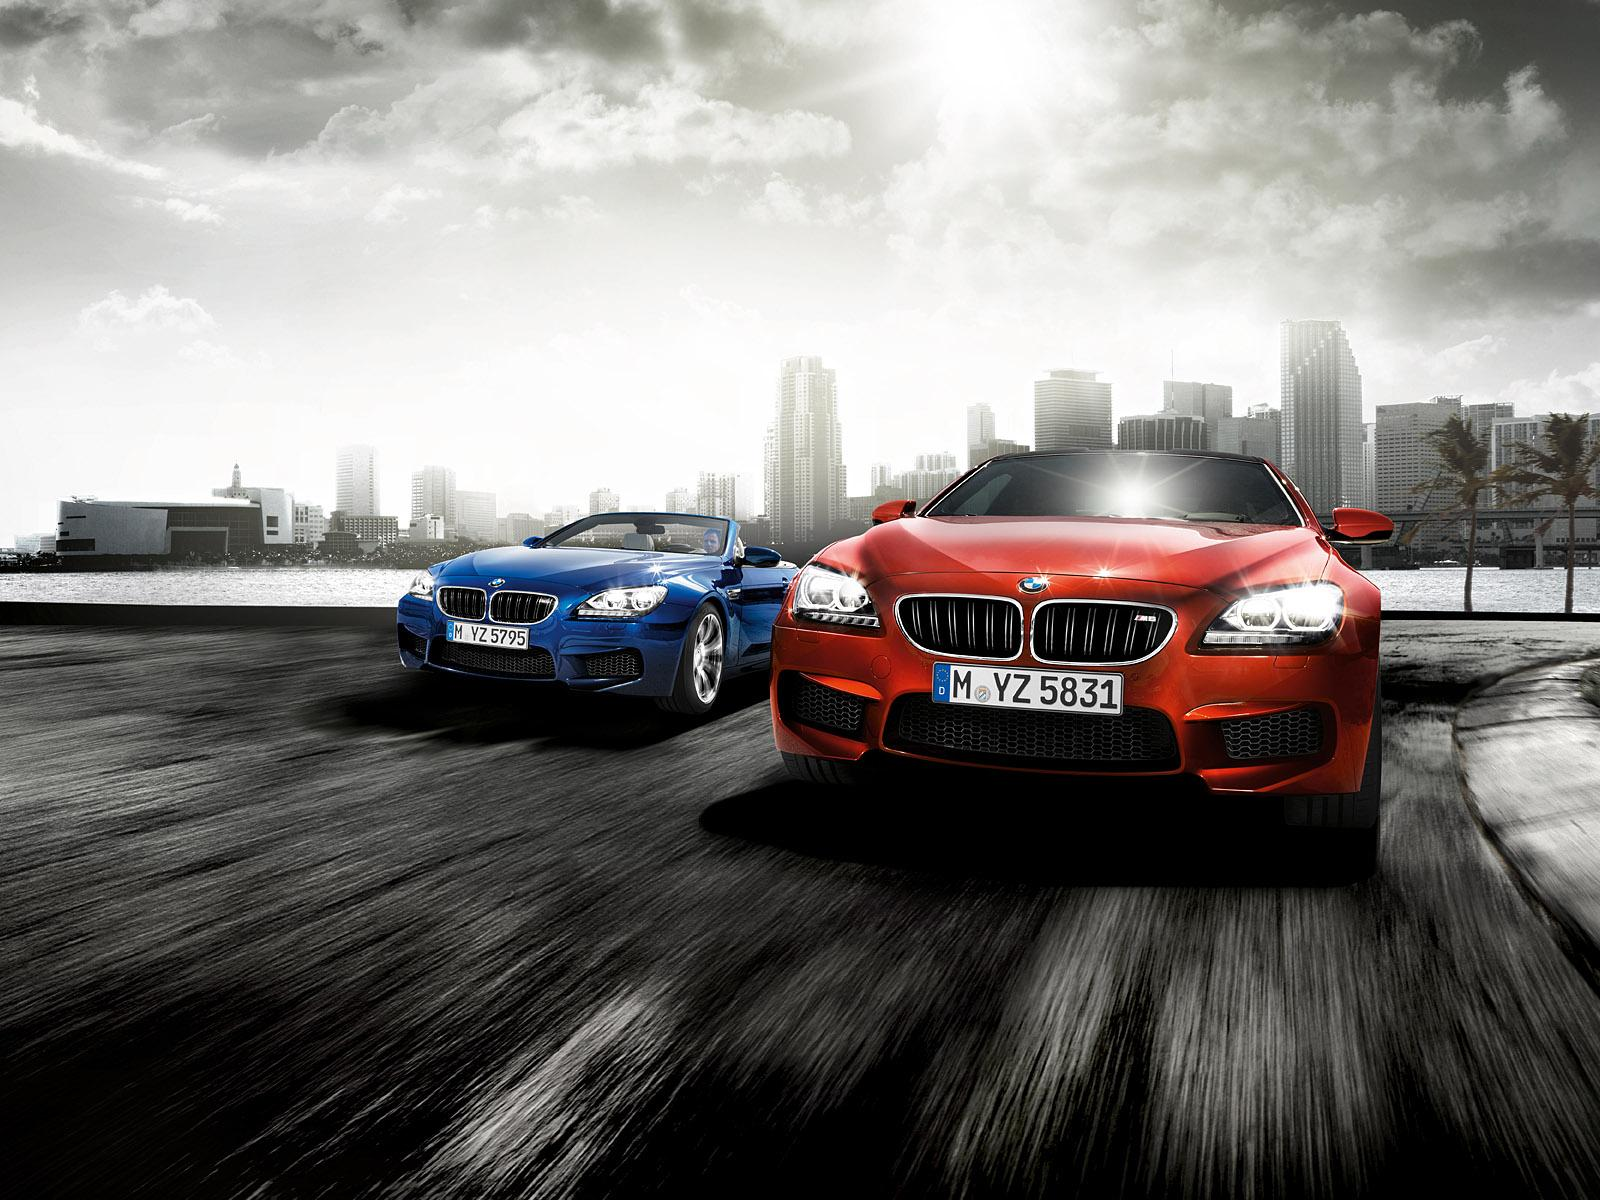 2013 BMW M6 Coupe/Convertible Promo Videos & New Hi-Res Images